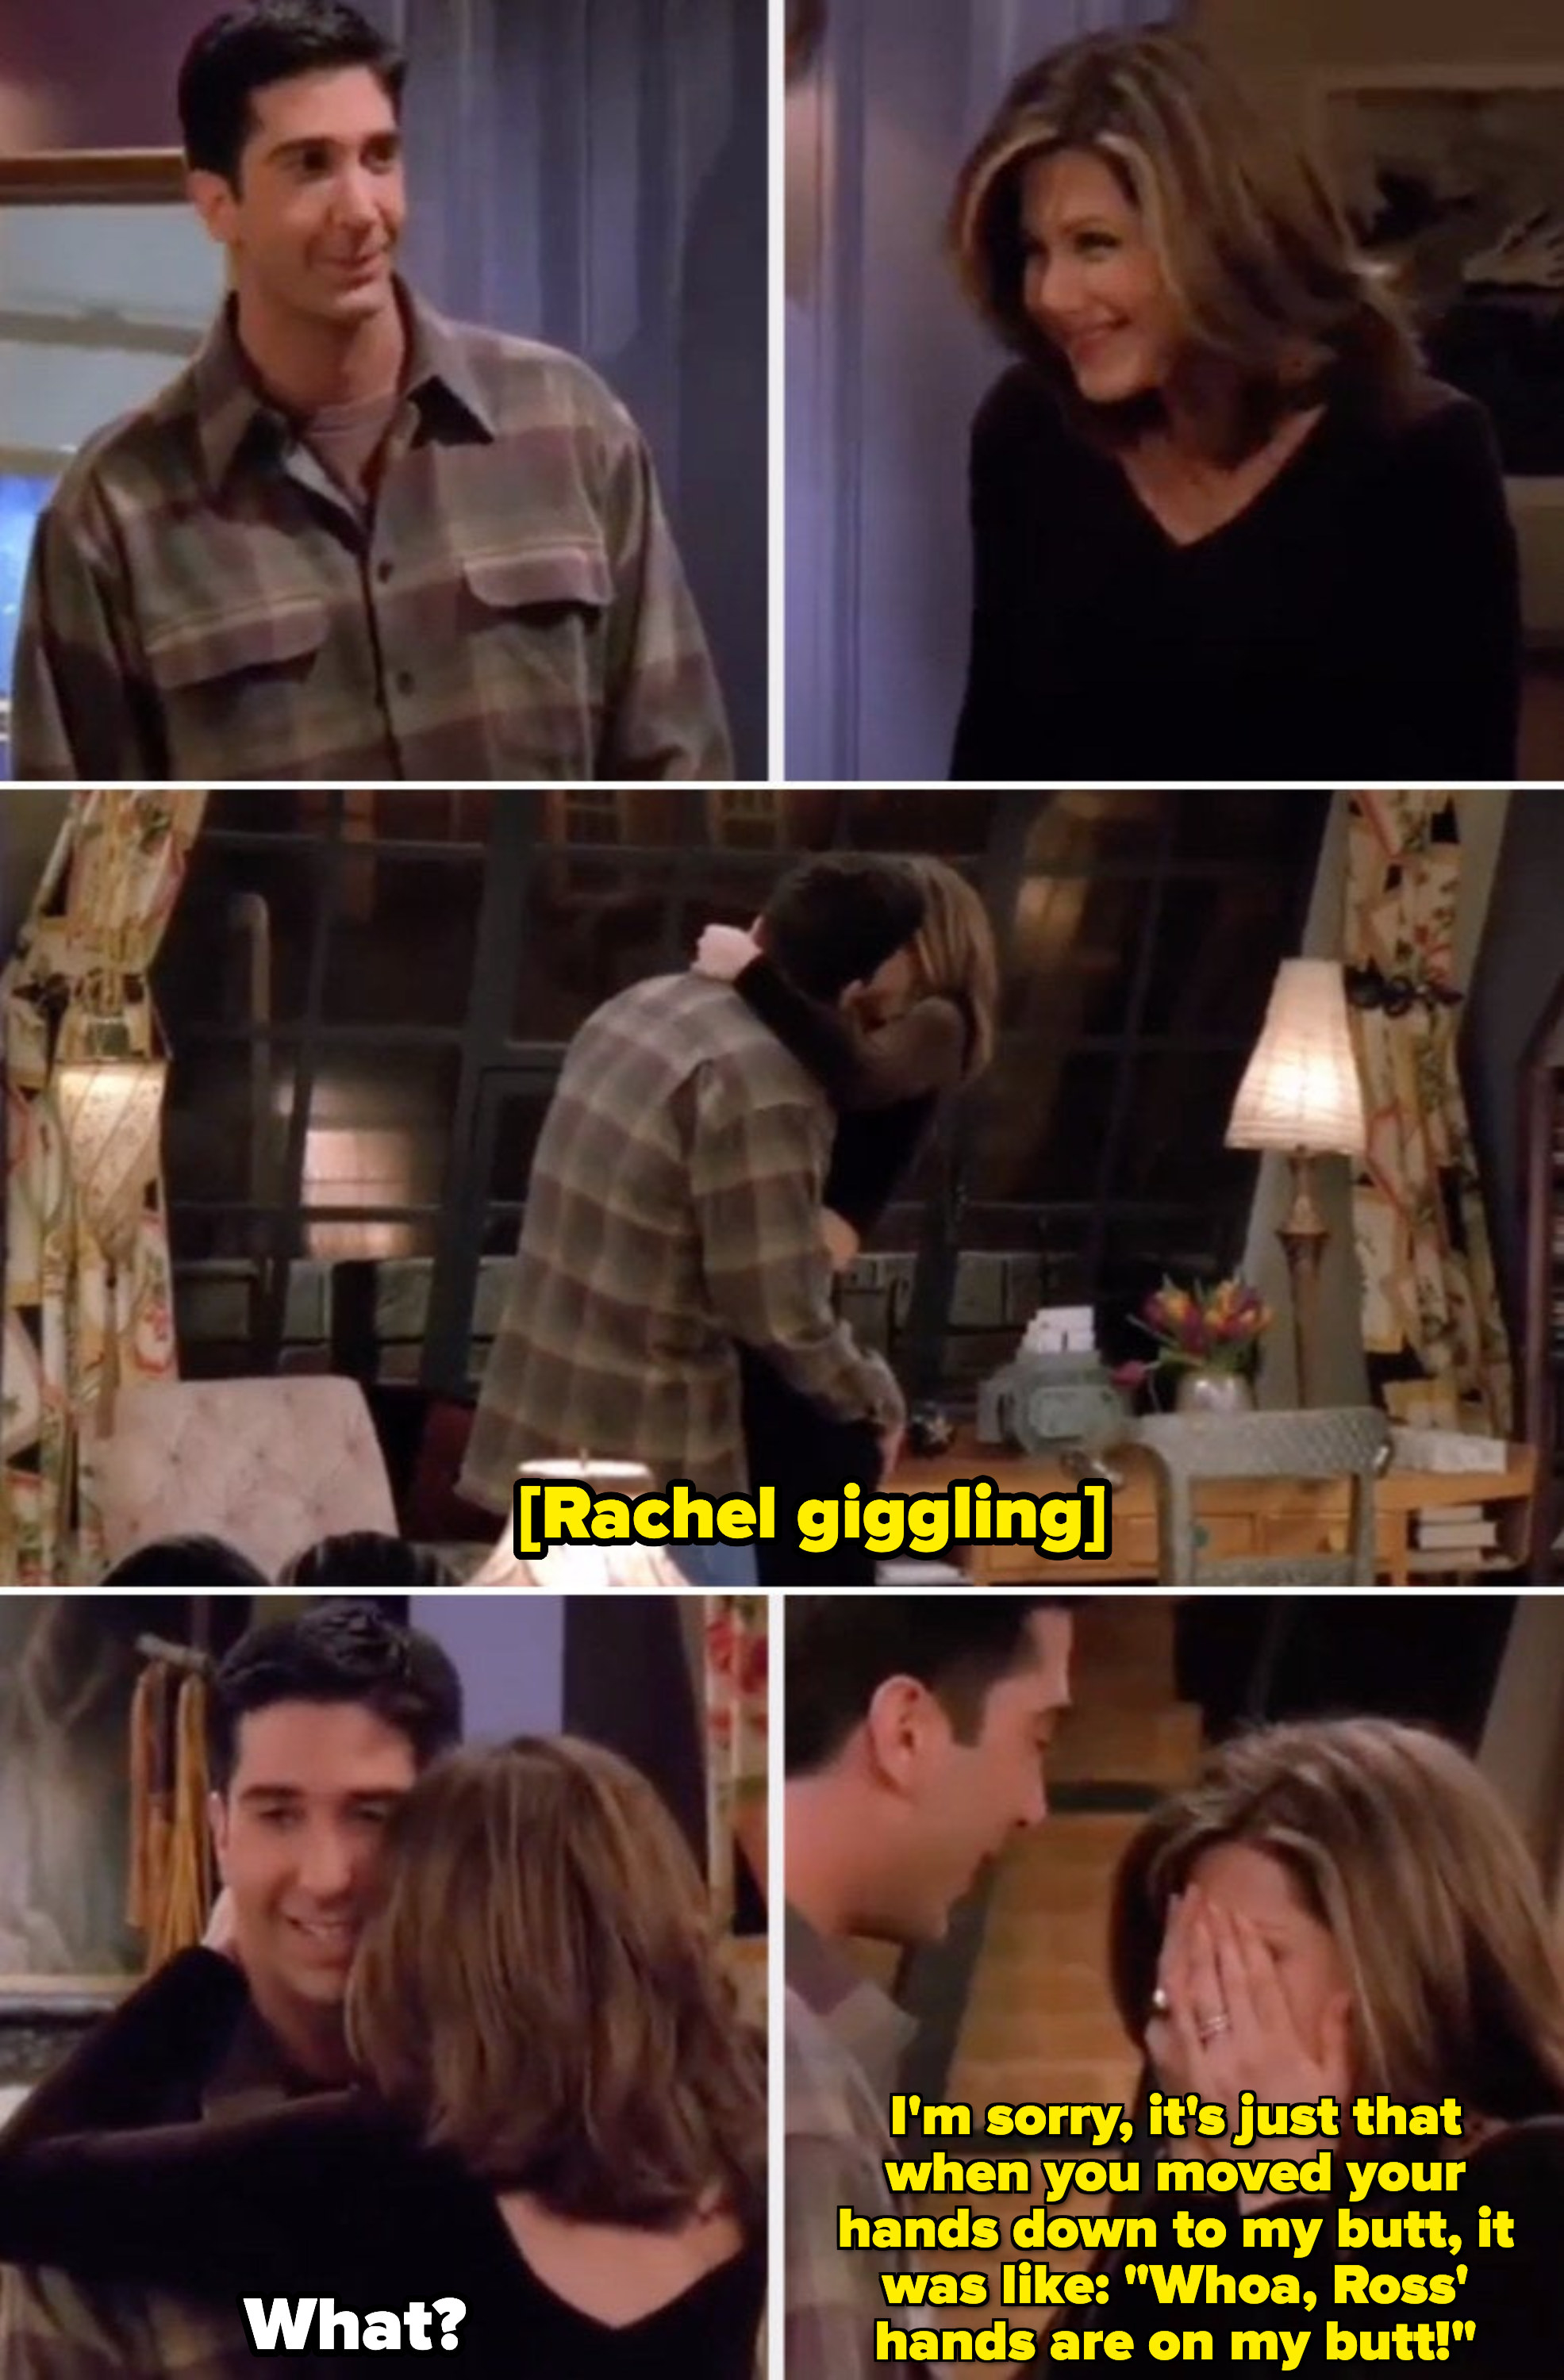 """Rachel giggling when Ross' hands go down to her butt, saying: """"I'm sorry, it's just that when you moved your hands down to my butt, it was like: 'Whoa, Ross' hands are on my butt!'"""""""